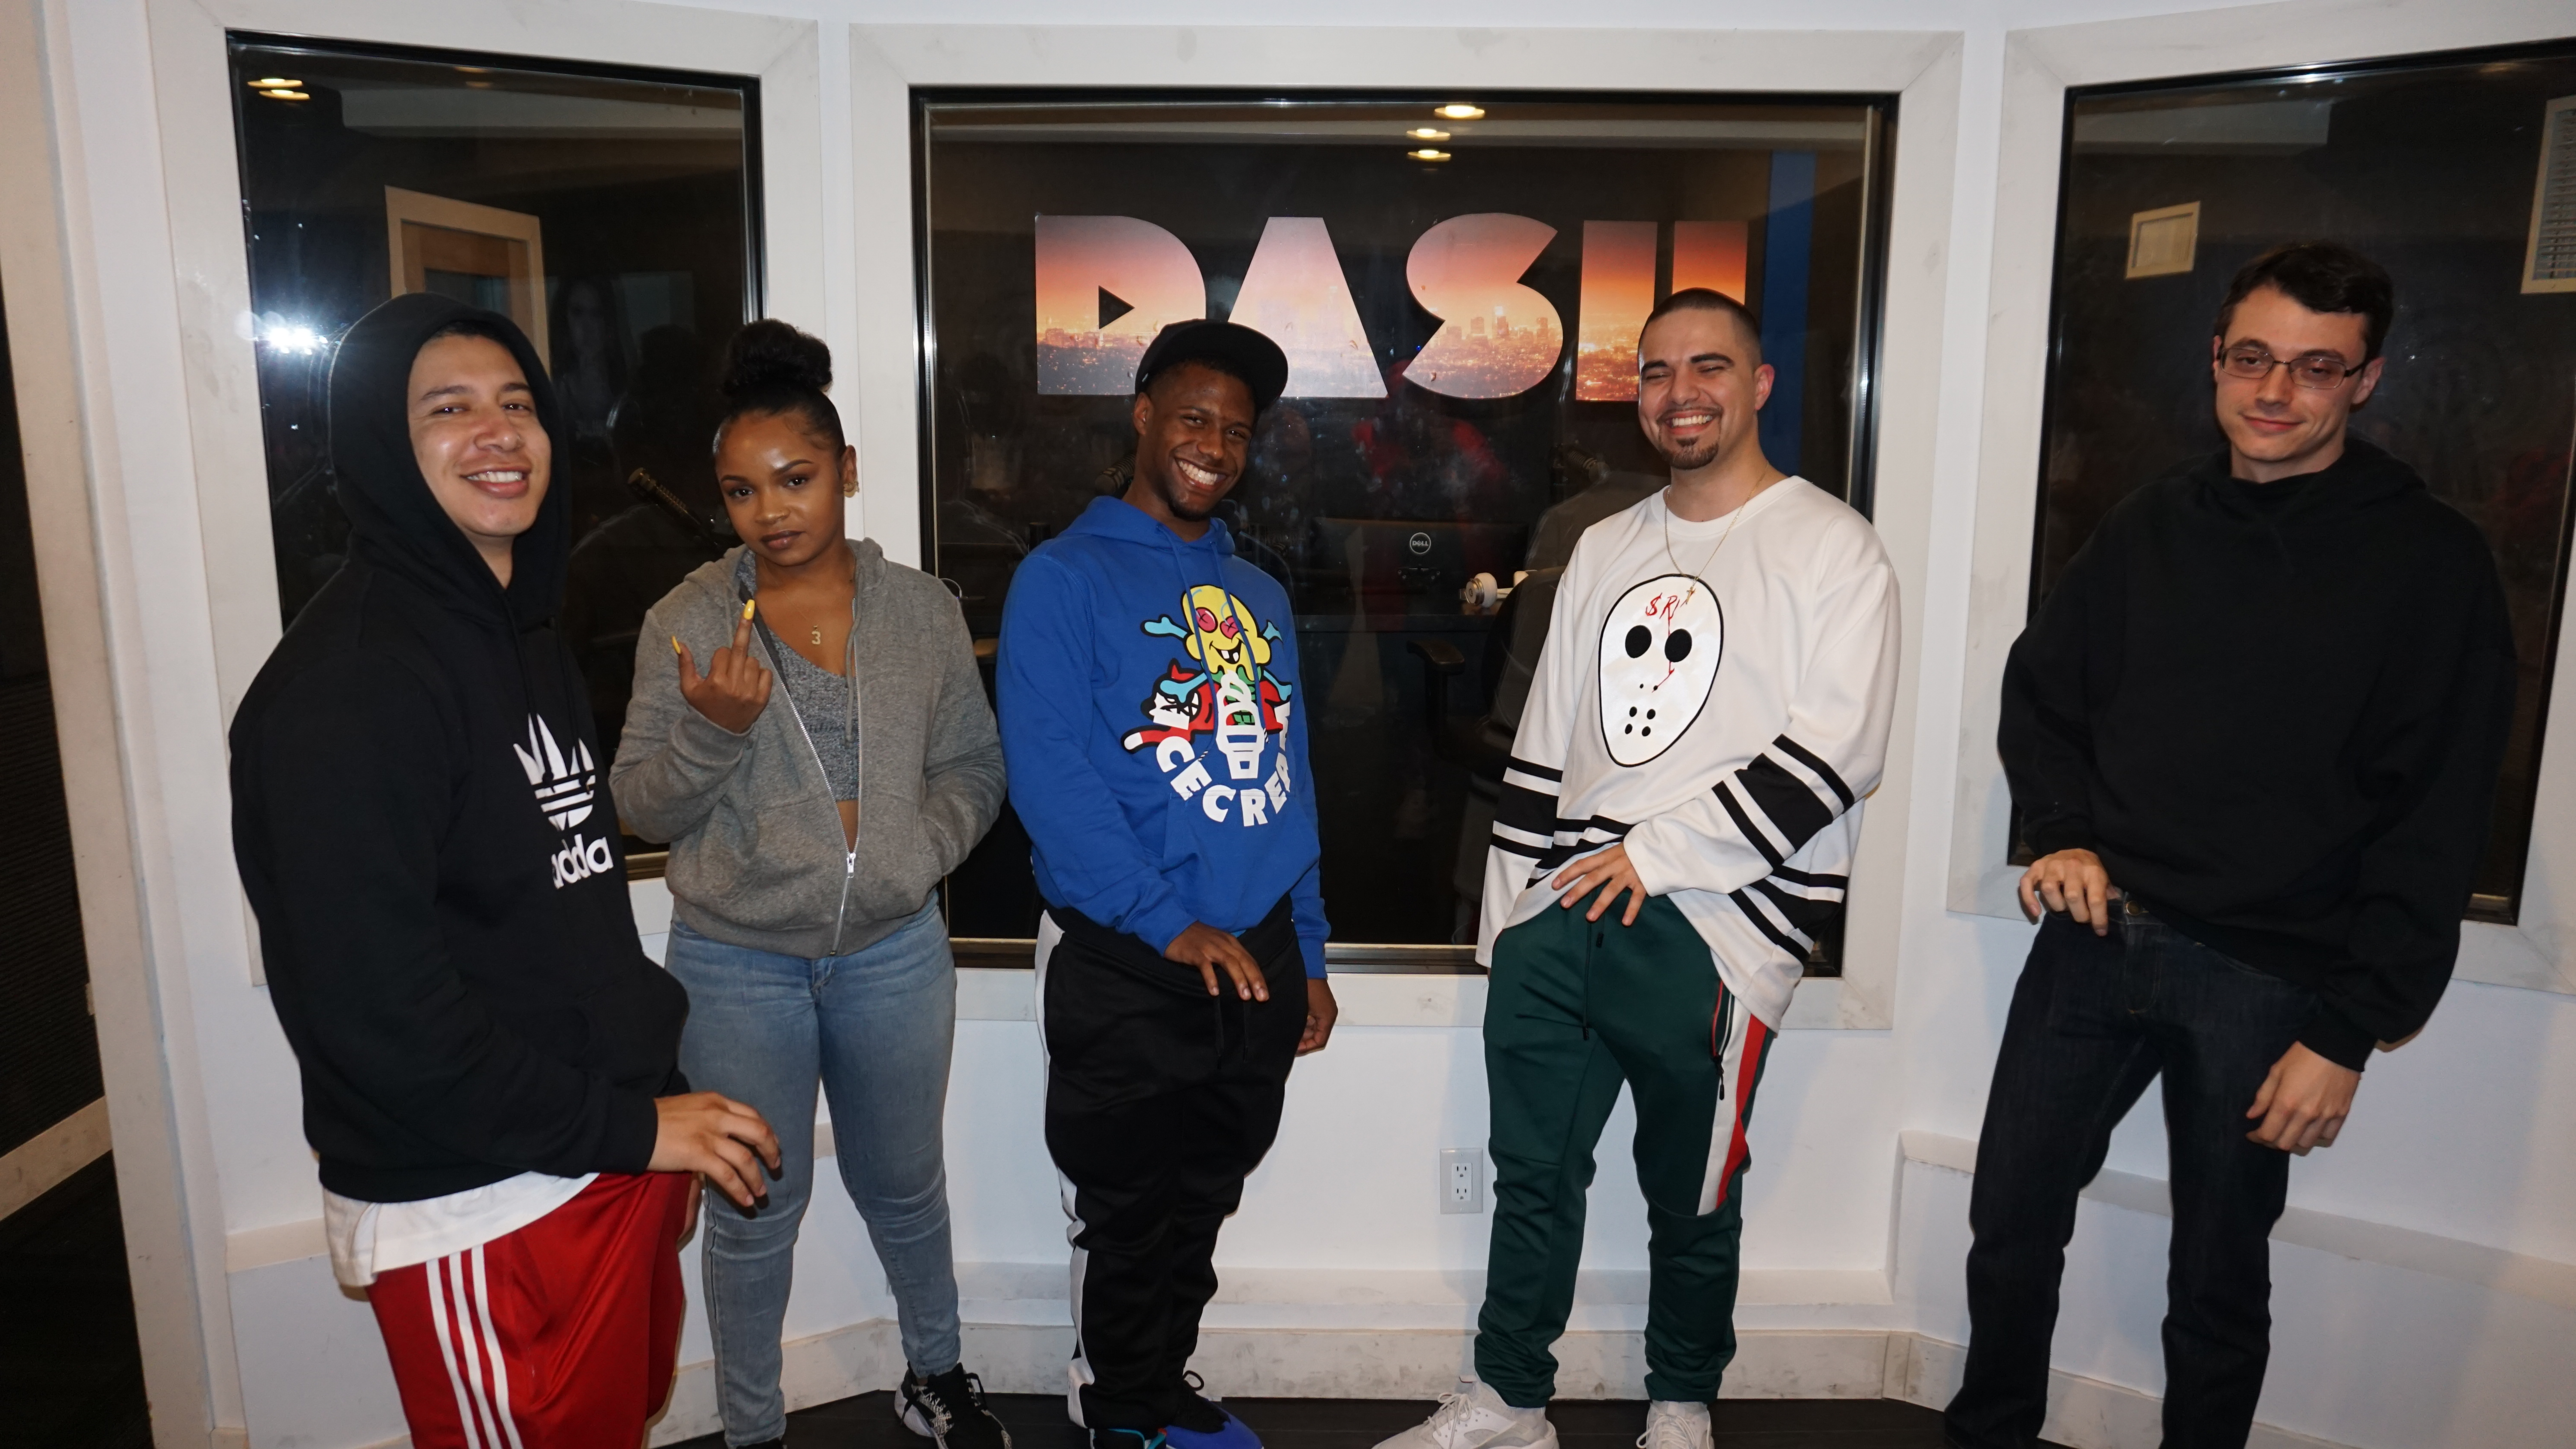 1TakeJay Interview With Rosecrans Radio (Video)